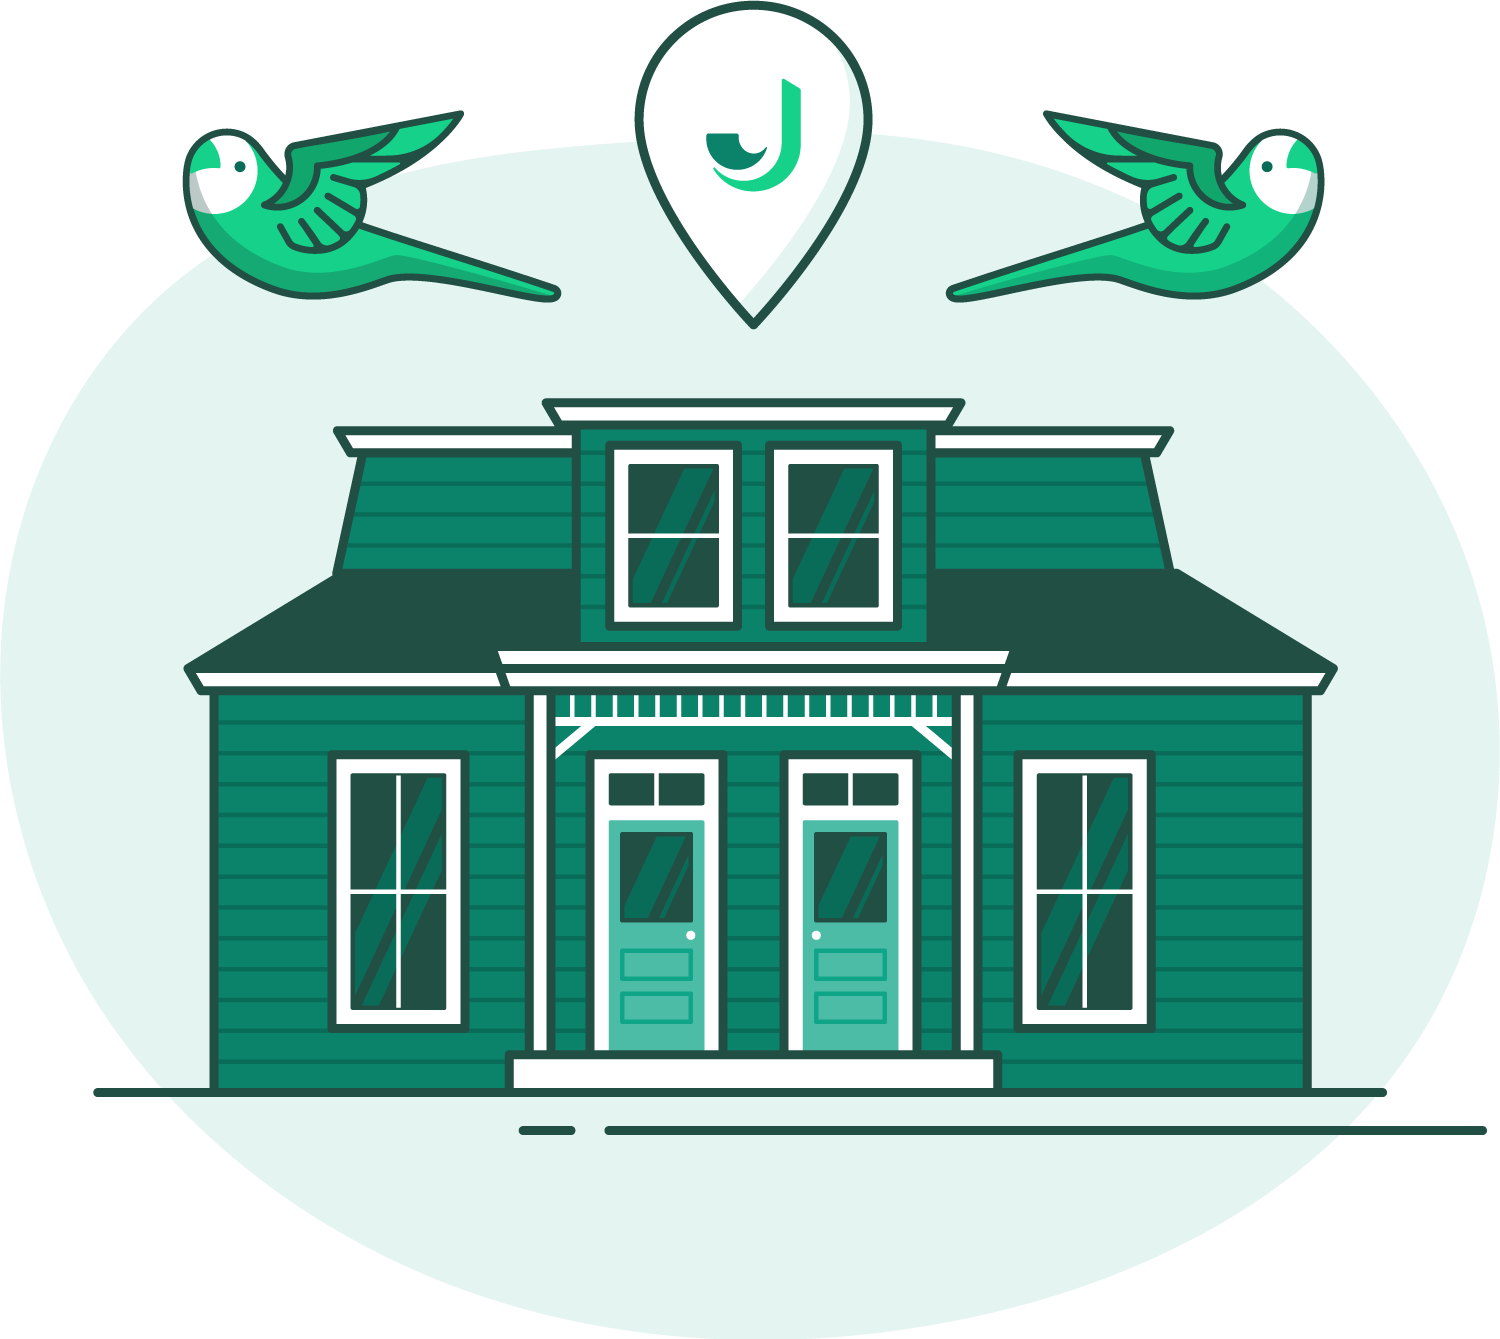 Illustration of Jovio's office - green house with a pin bubble with Jovio logo and two parakeets flying on top